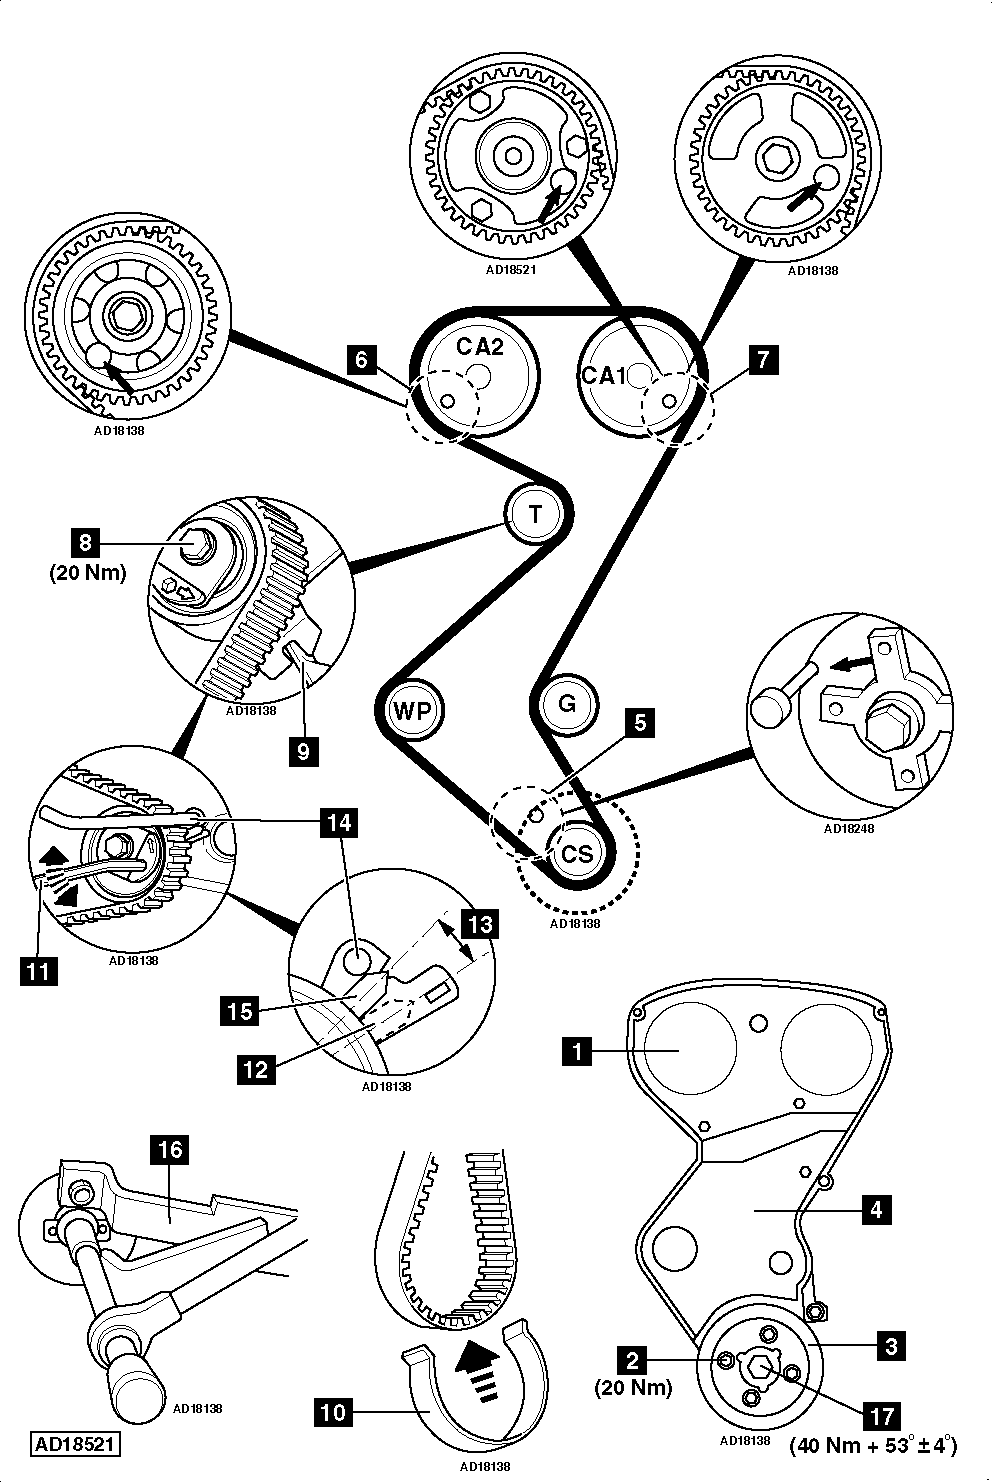 57 Chevy Starter Wiring Diagram further 1955 Chevy Wiper Motor Wiring also 2007 Gti Air Conditioning Wiring Diagram likewise Chevy Ignition Switch Wiring For 1969 in addition 1957 Chevy Starter Wiring Diagram. on 55 chevy starter wiring diagram